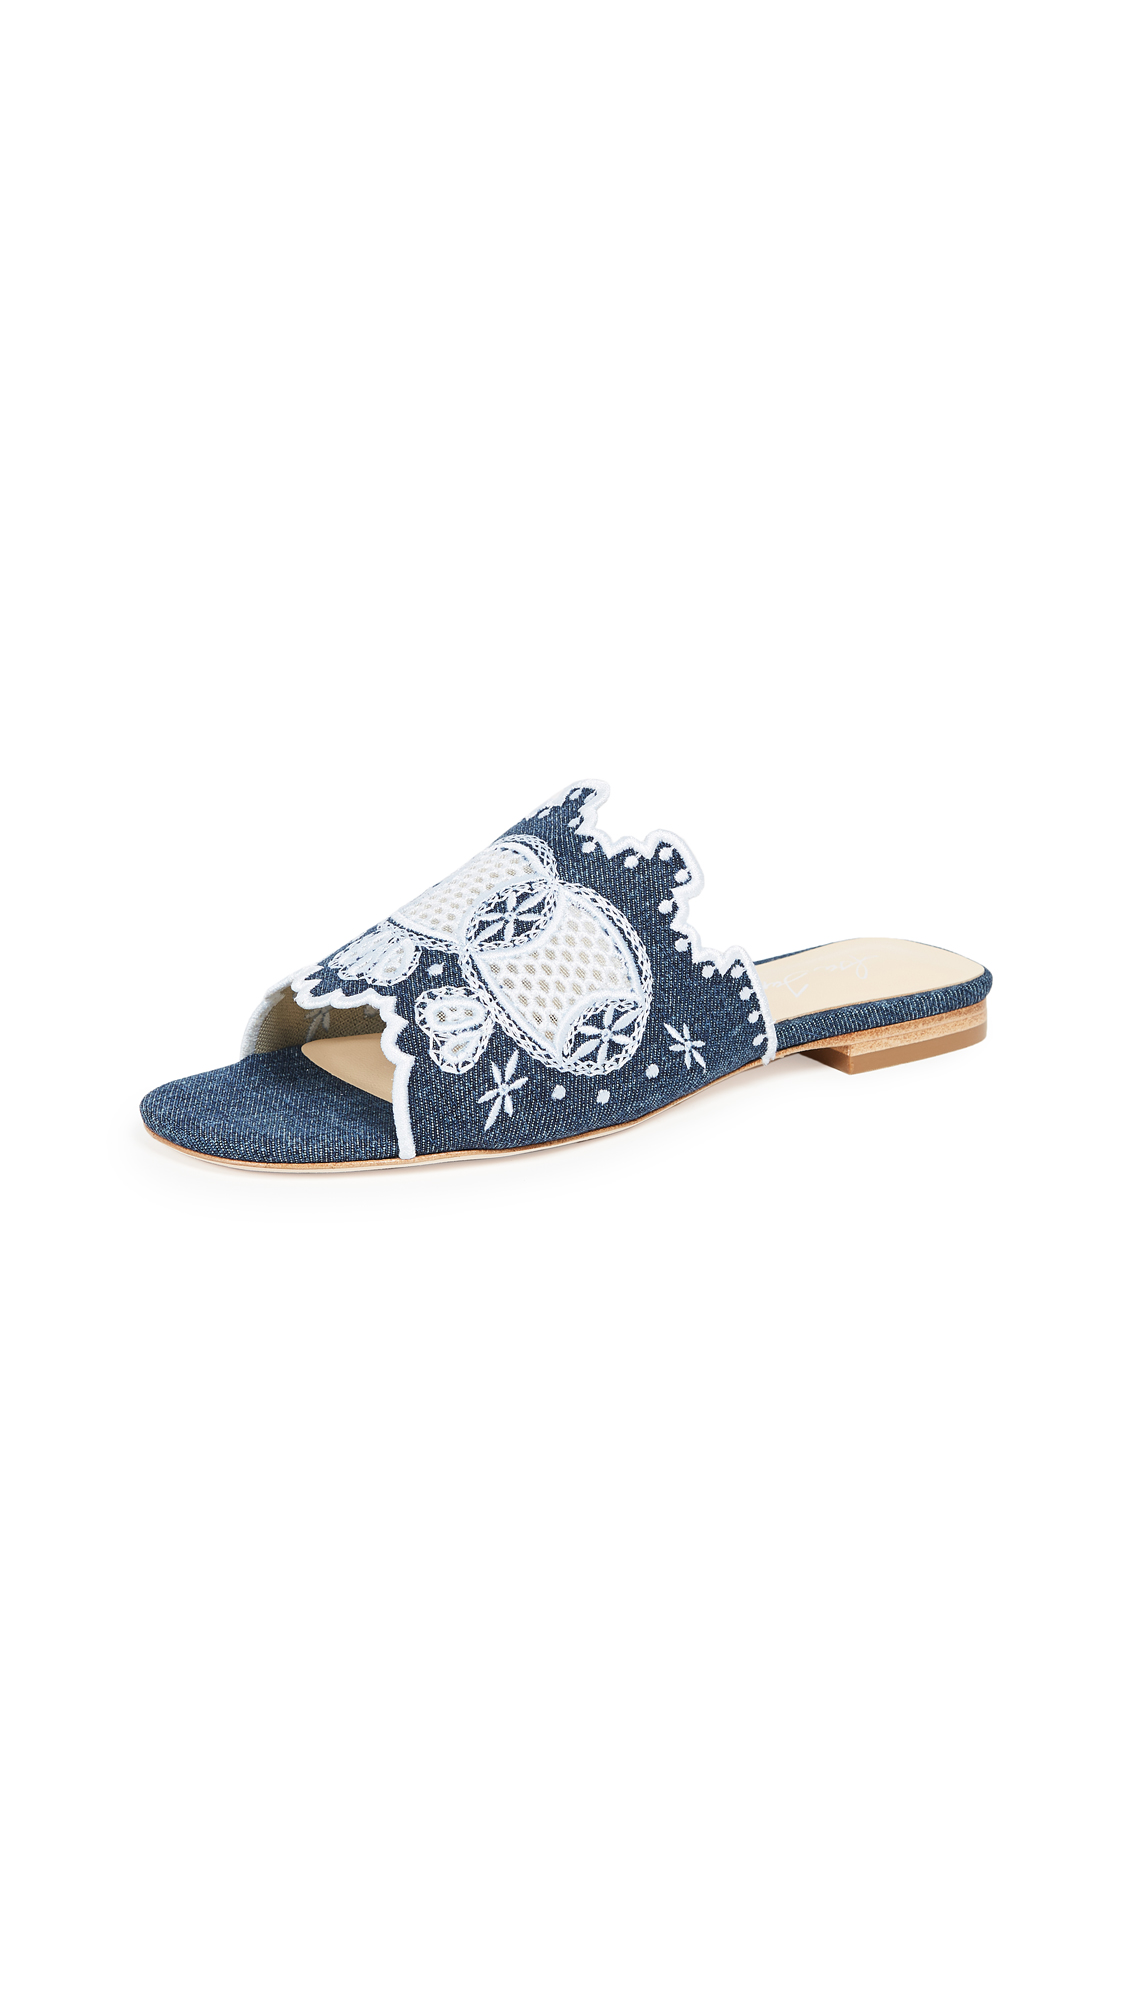 Isa Tapia Nile Slides - Denim